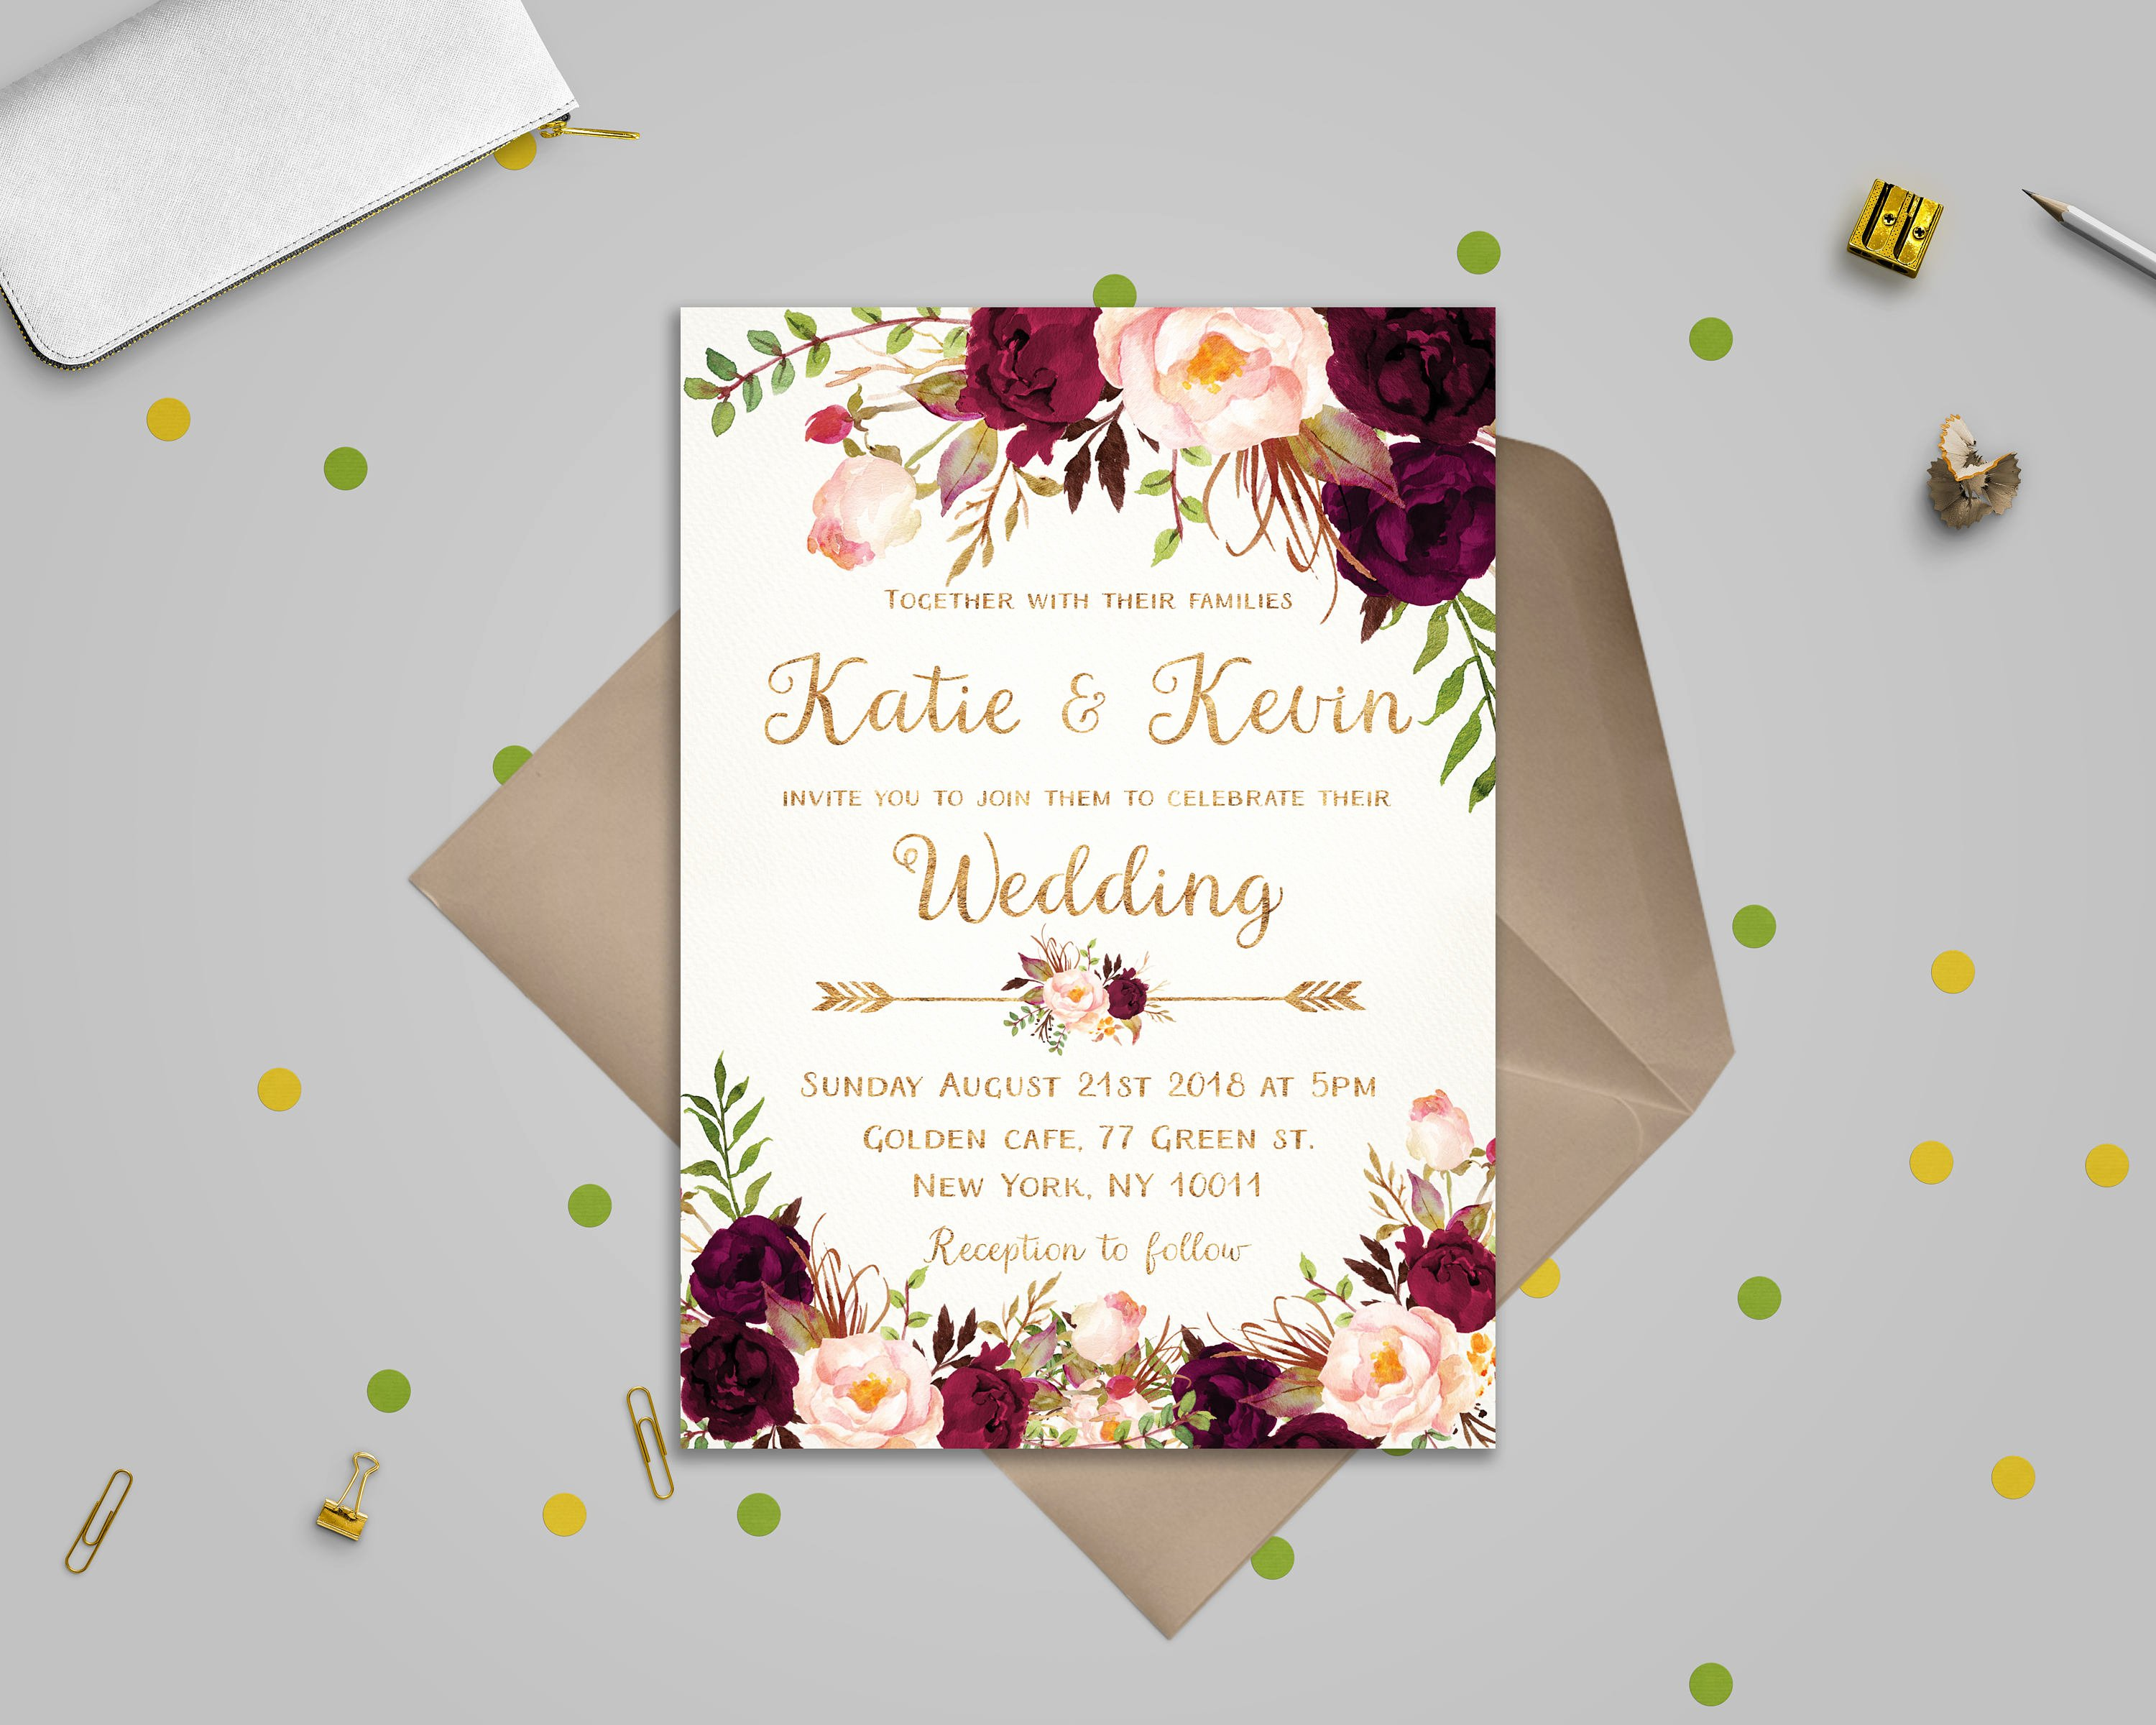 Free Wedding Invitations Printable Unique Floral Wedding Invitation Template Wedding Invitation